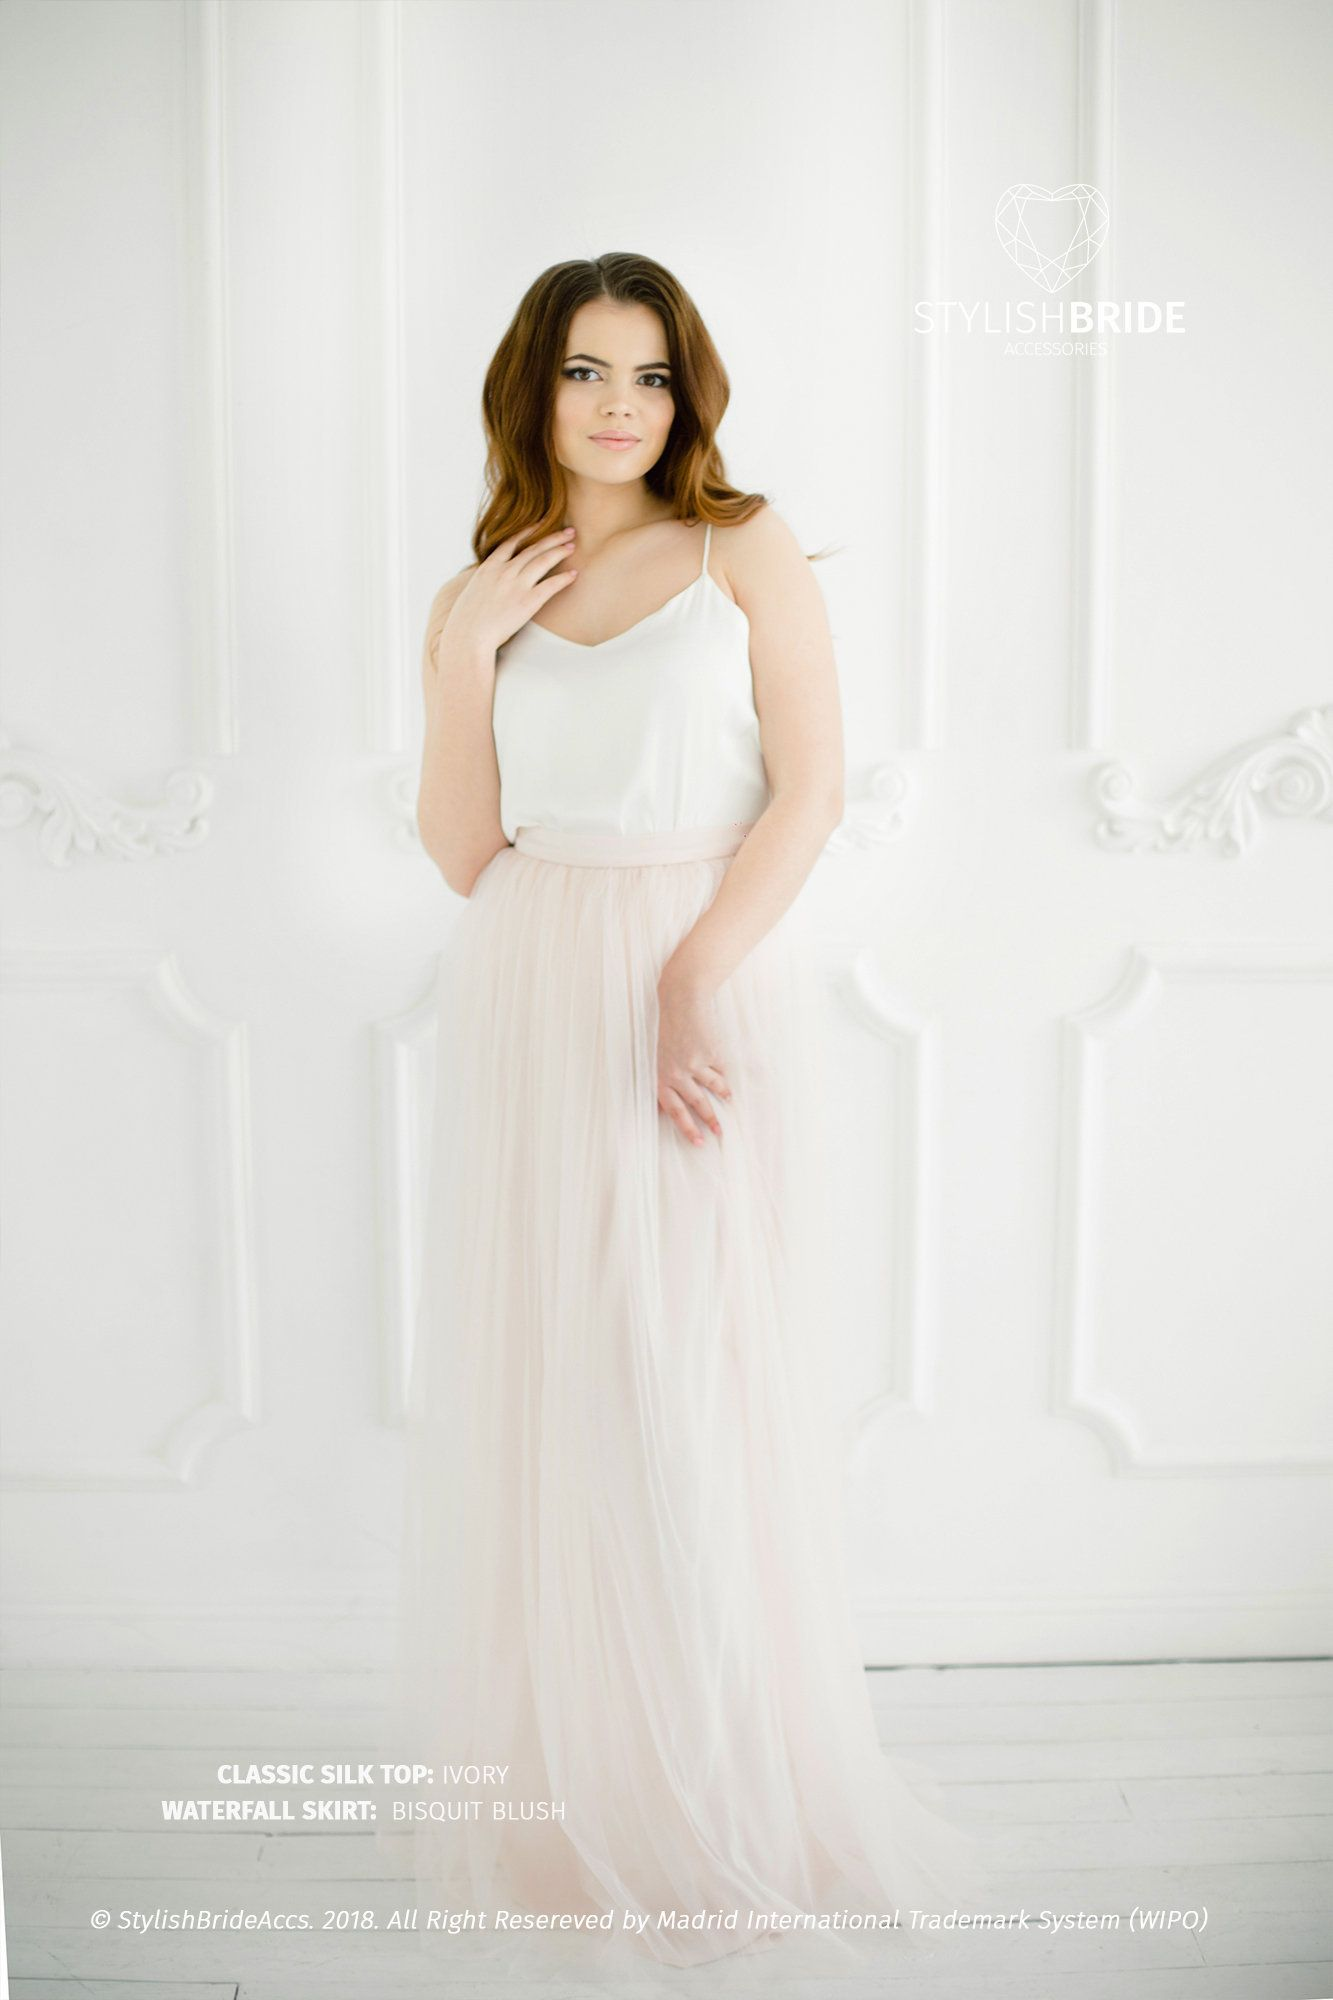 4cfa0ec75a Biscuit Blush Tulle Dress with Ivory Silk Classic Cami Top, Ivory Long  Floor Length Waterfall Skirt, Simple Engagement Dress 100% real photos!